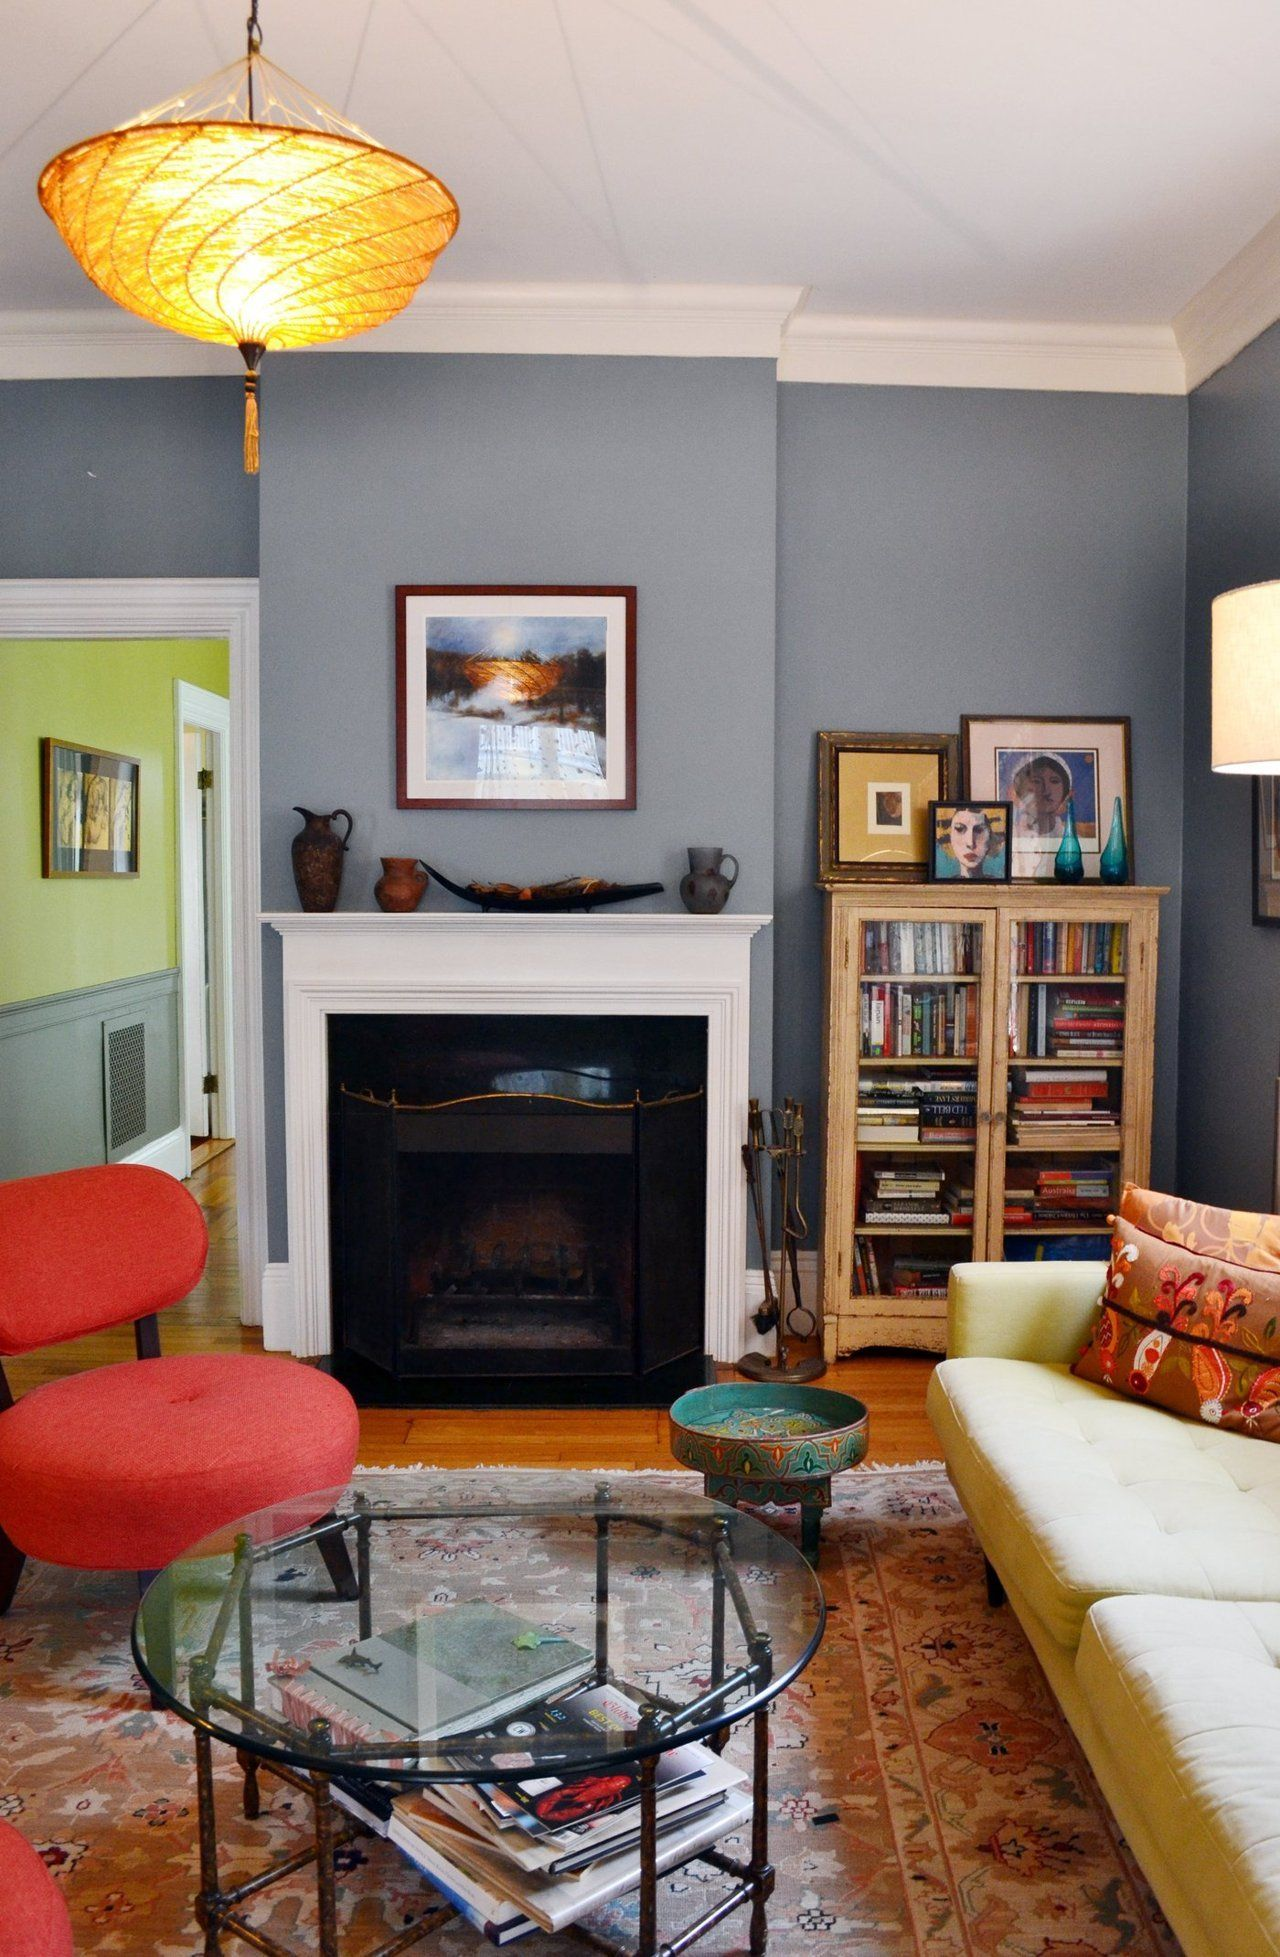 Pretty Bluish Gray Looks Great With The Other Colors Deborah Eva Philips Art Filled Wanderlust Home